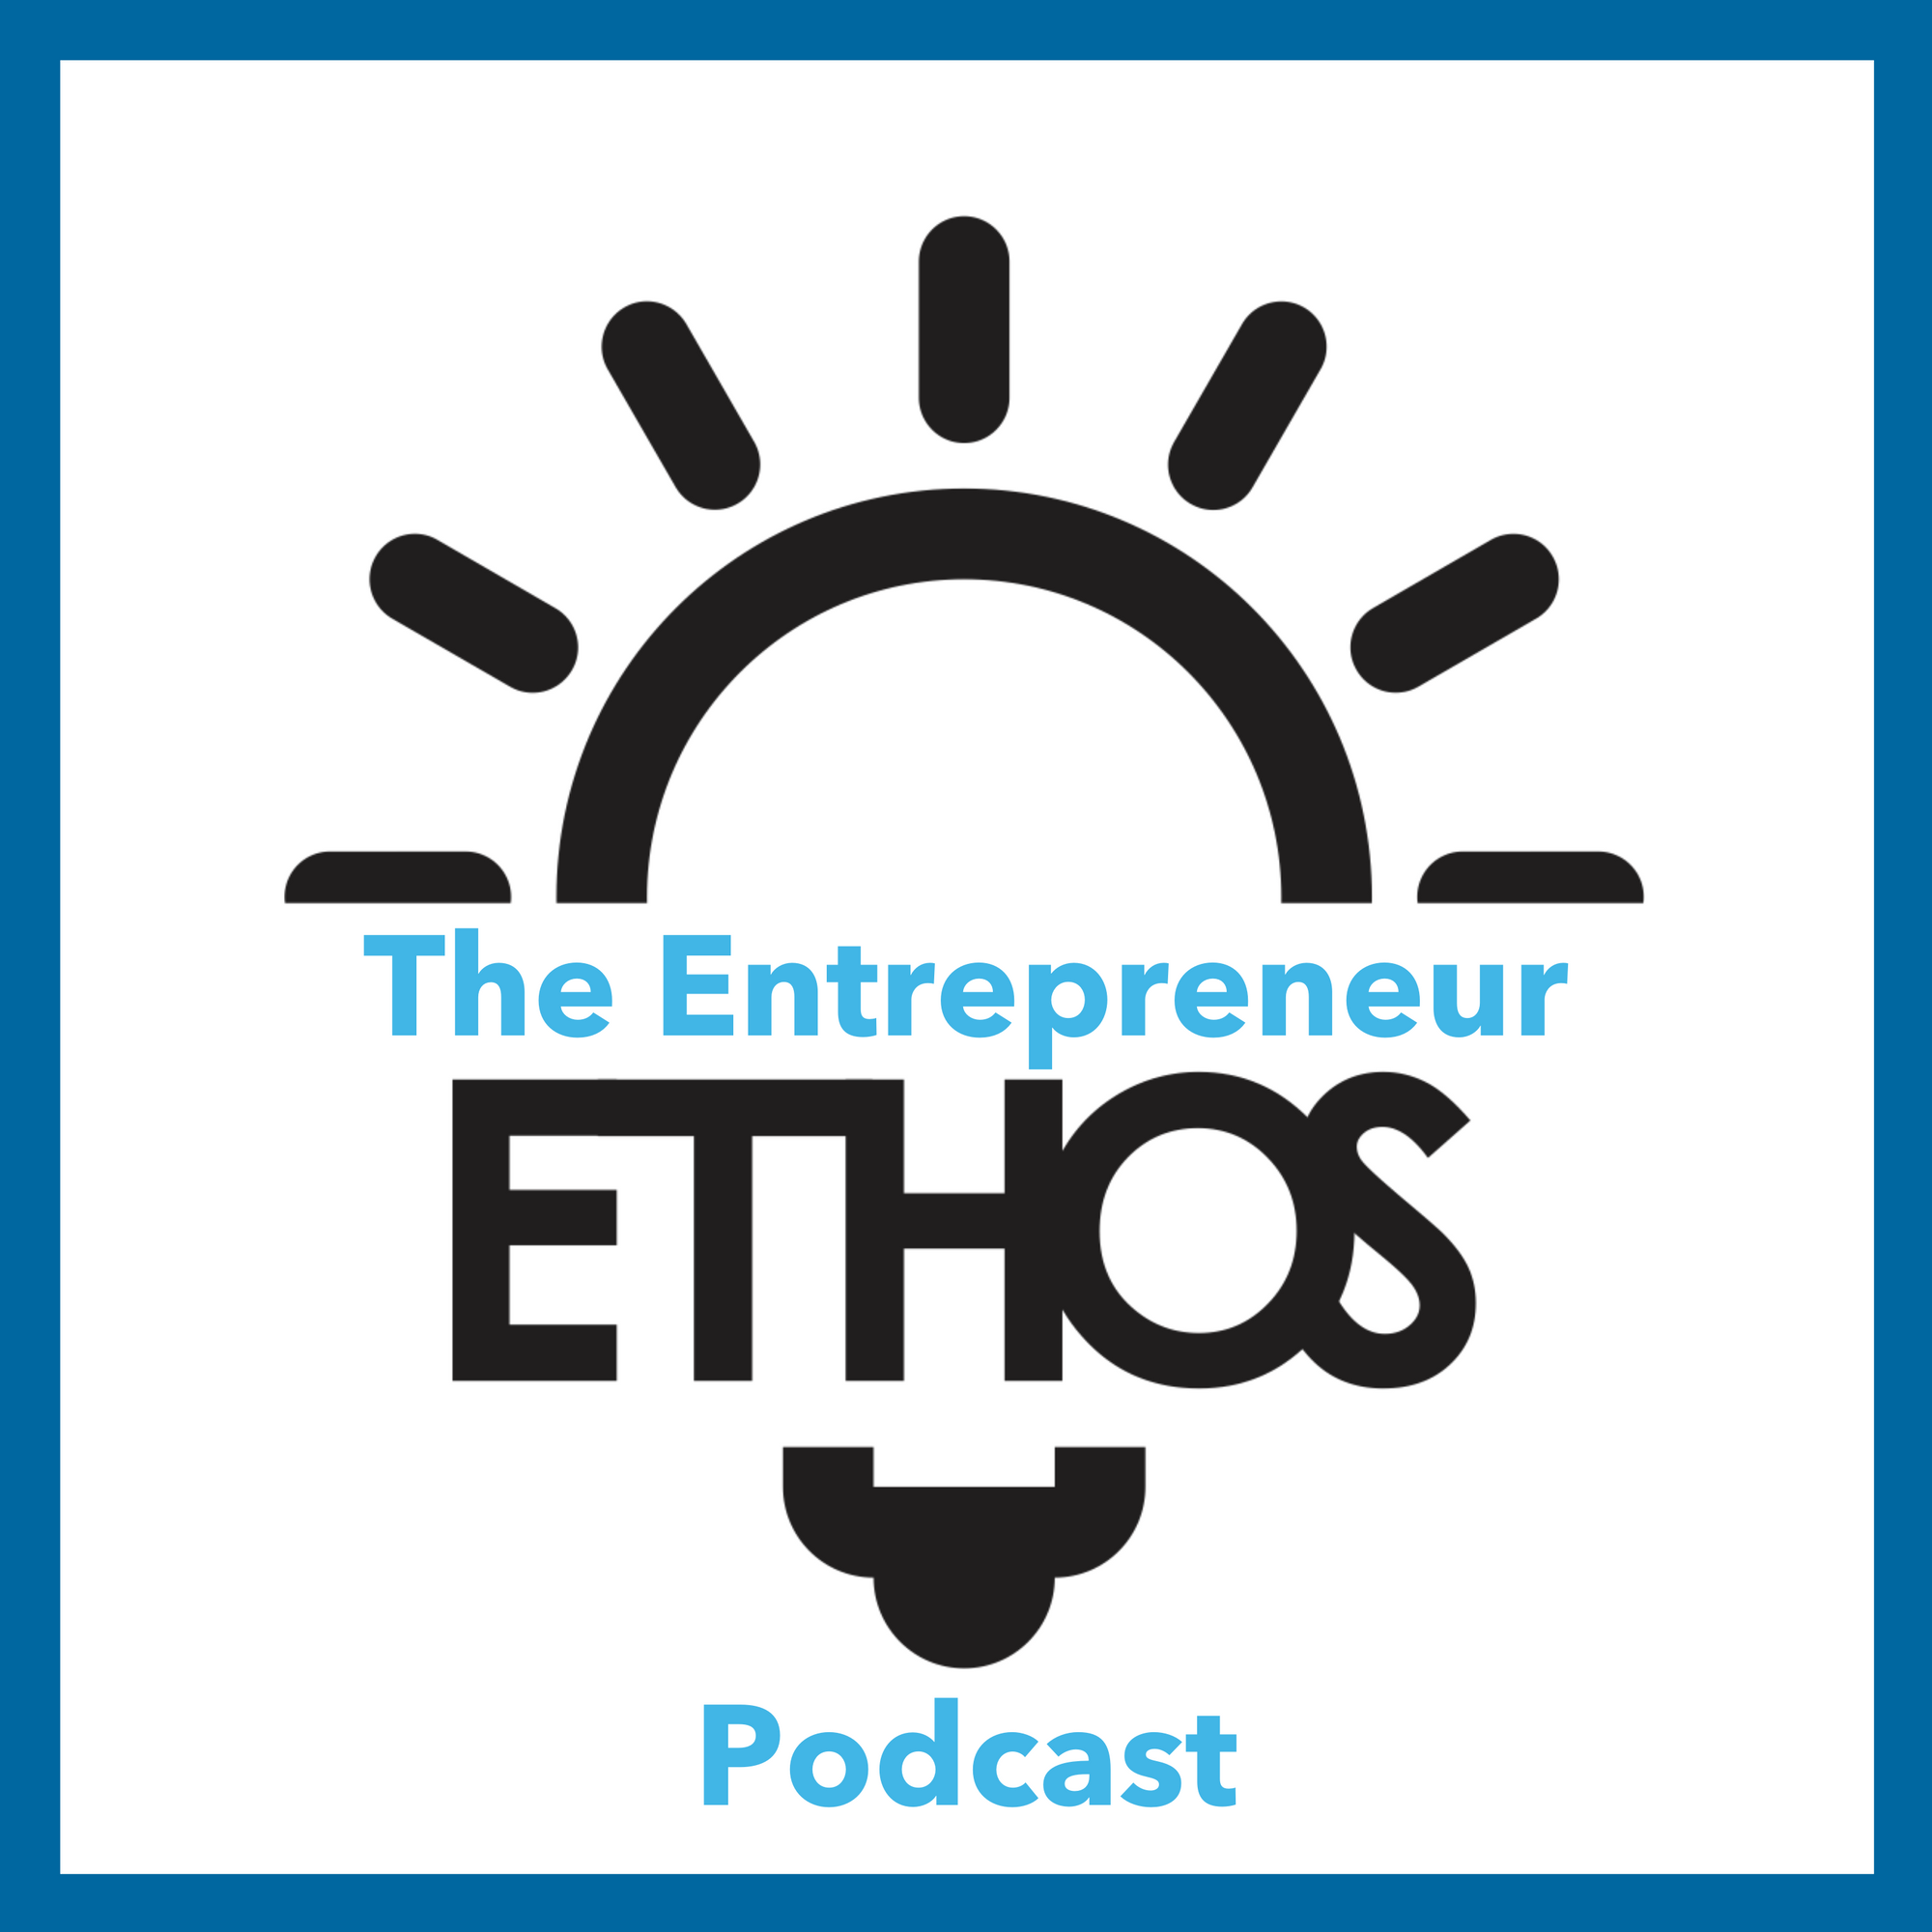 The Entrepreneur Ethos